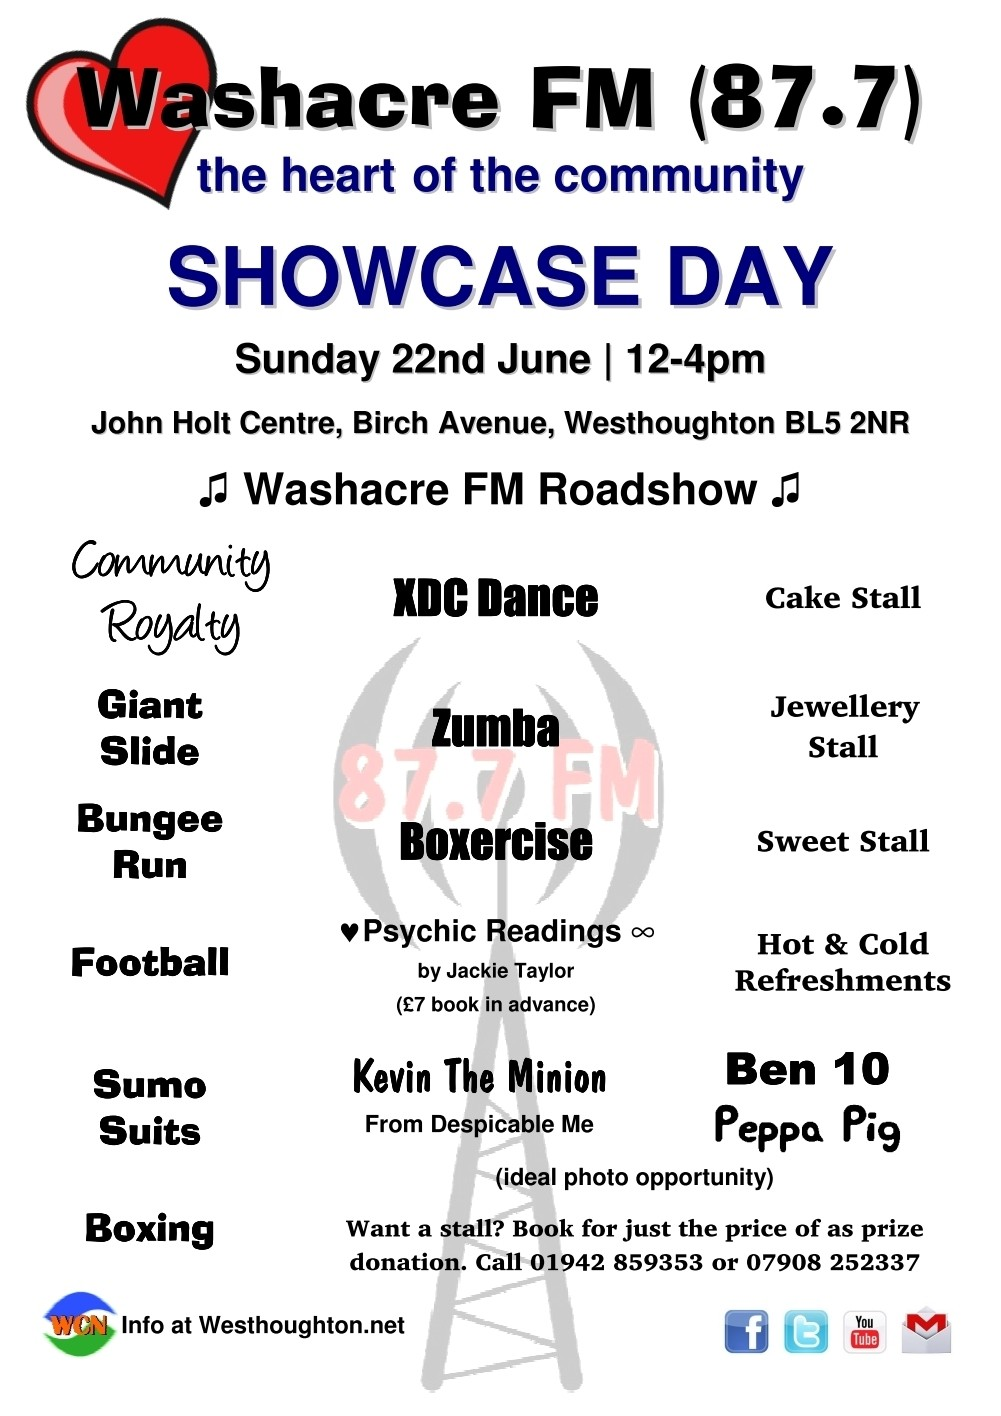 Washacre FM 2014 Showcase Day - Poster